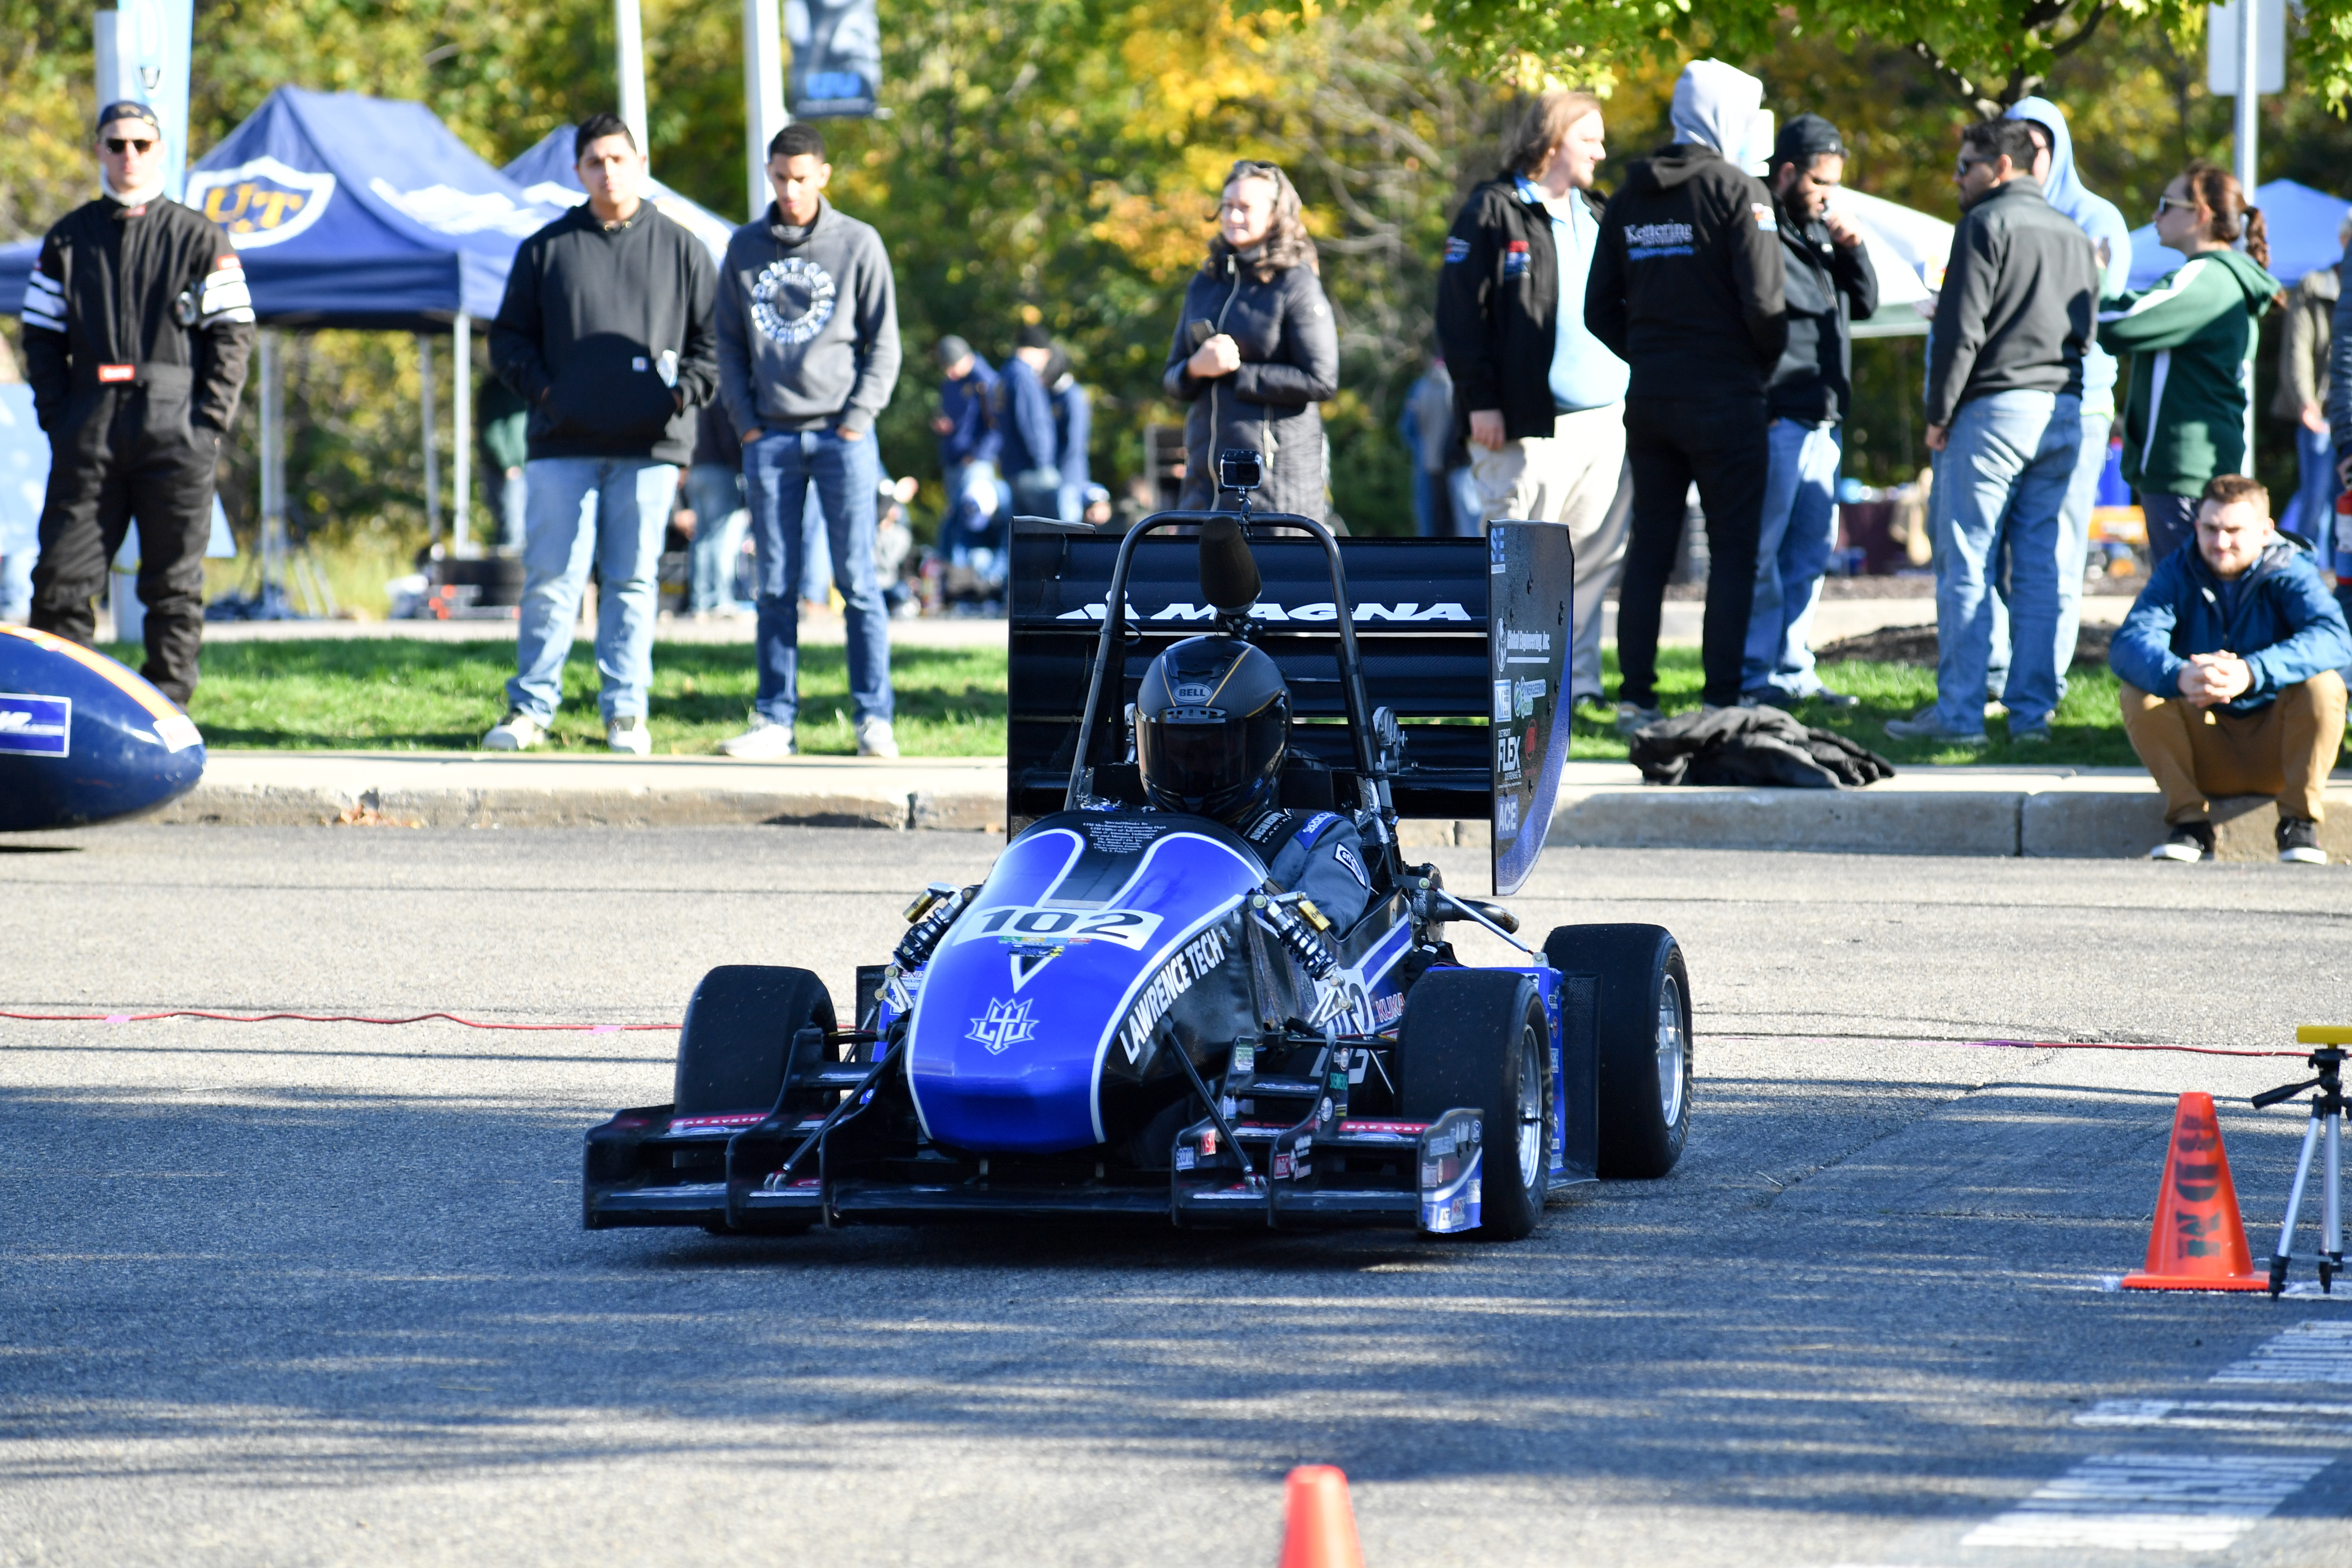 LTU's Formula SAE race car - LTU Grand Prix